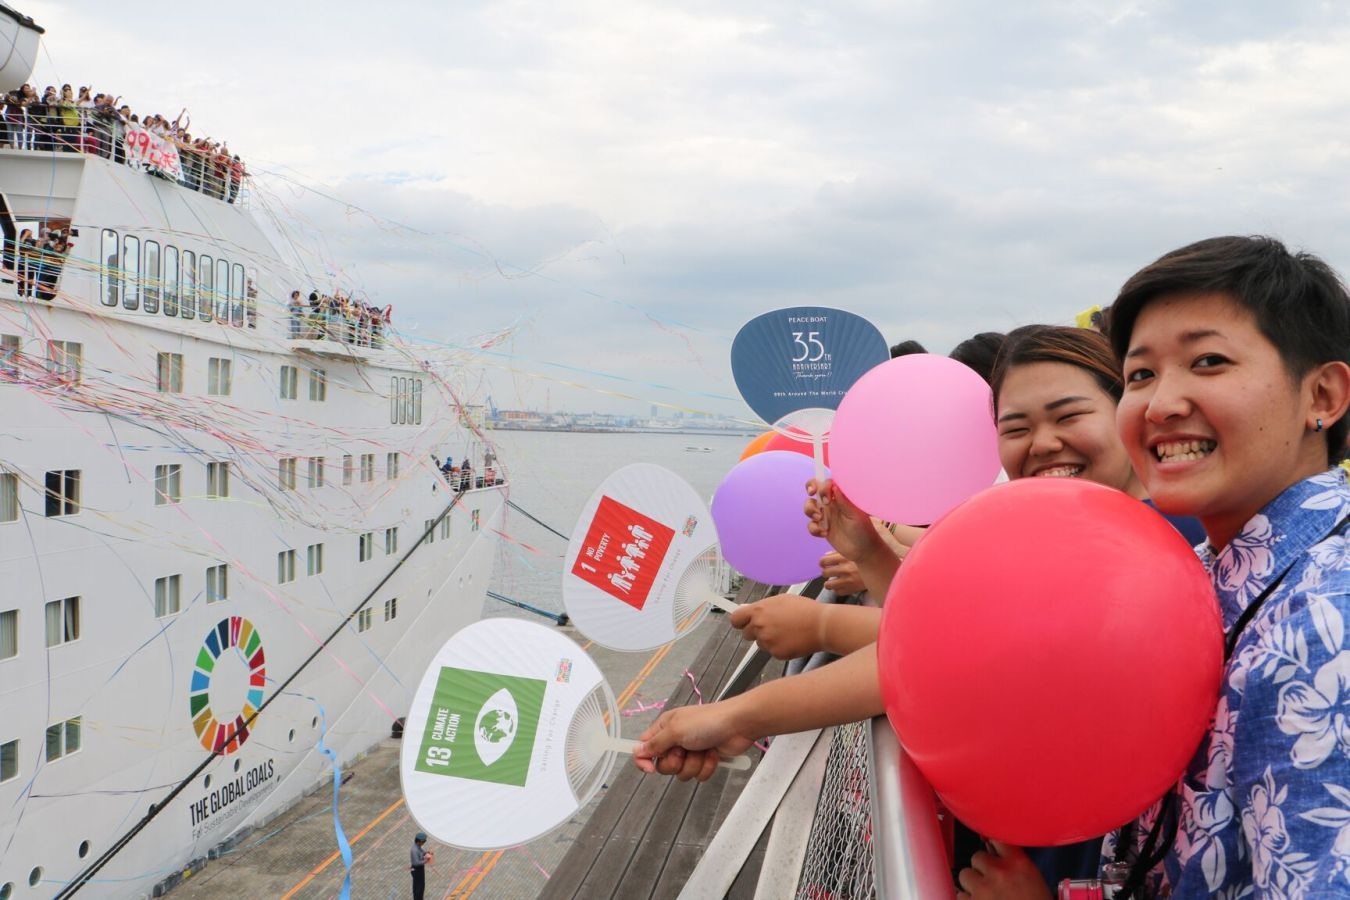 The PEACE BOAT sails from Yokohama to take the Sustainable Development Goals around the globe.